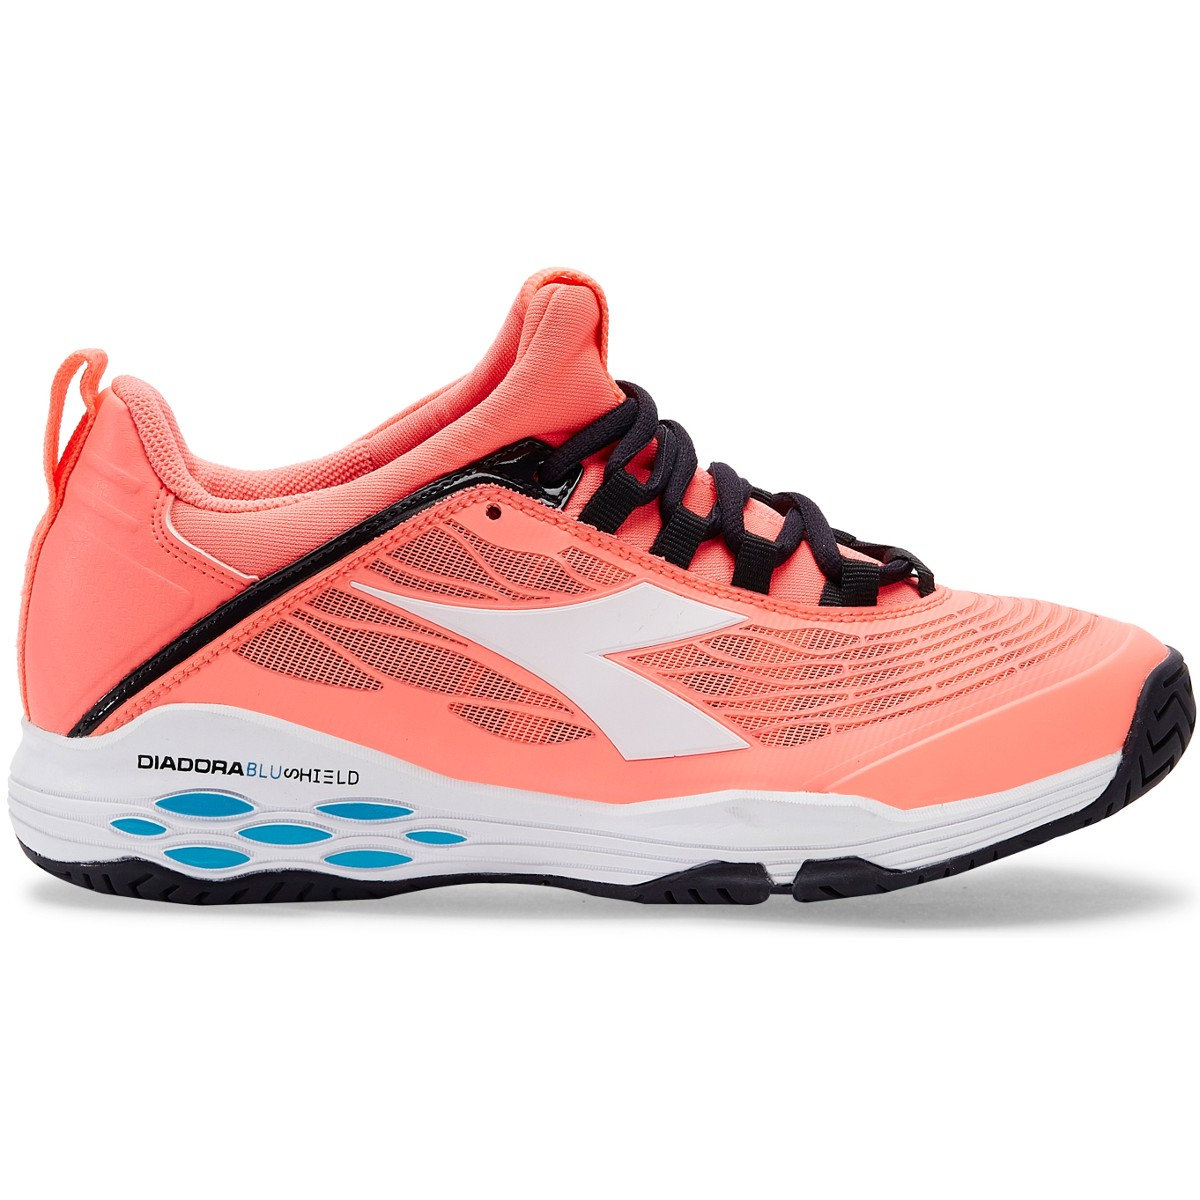 92c15ac6 WOMEN'S DIADORA SPEED BLUSHIELD FLY ALL COURT SHOES - DIADORA ...